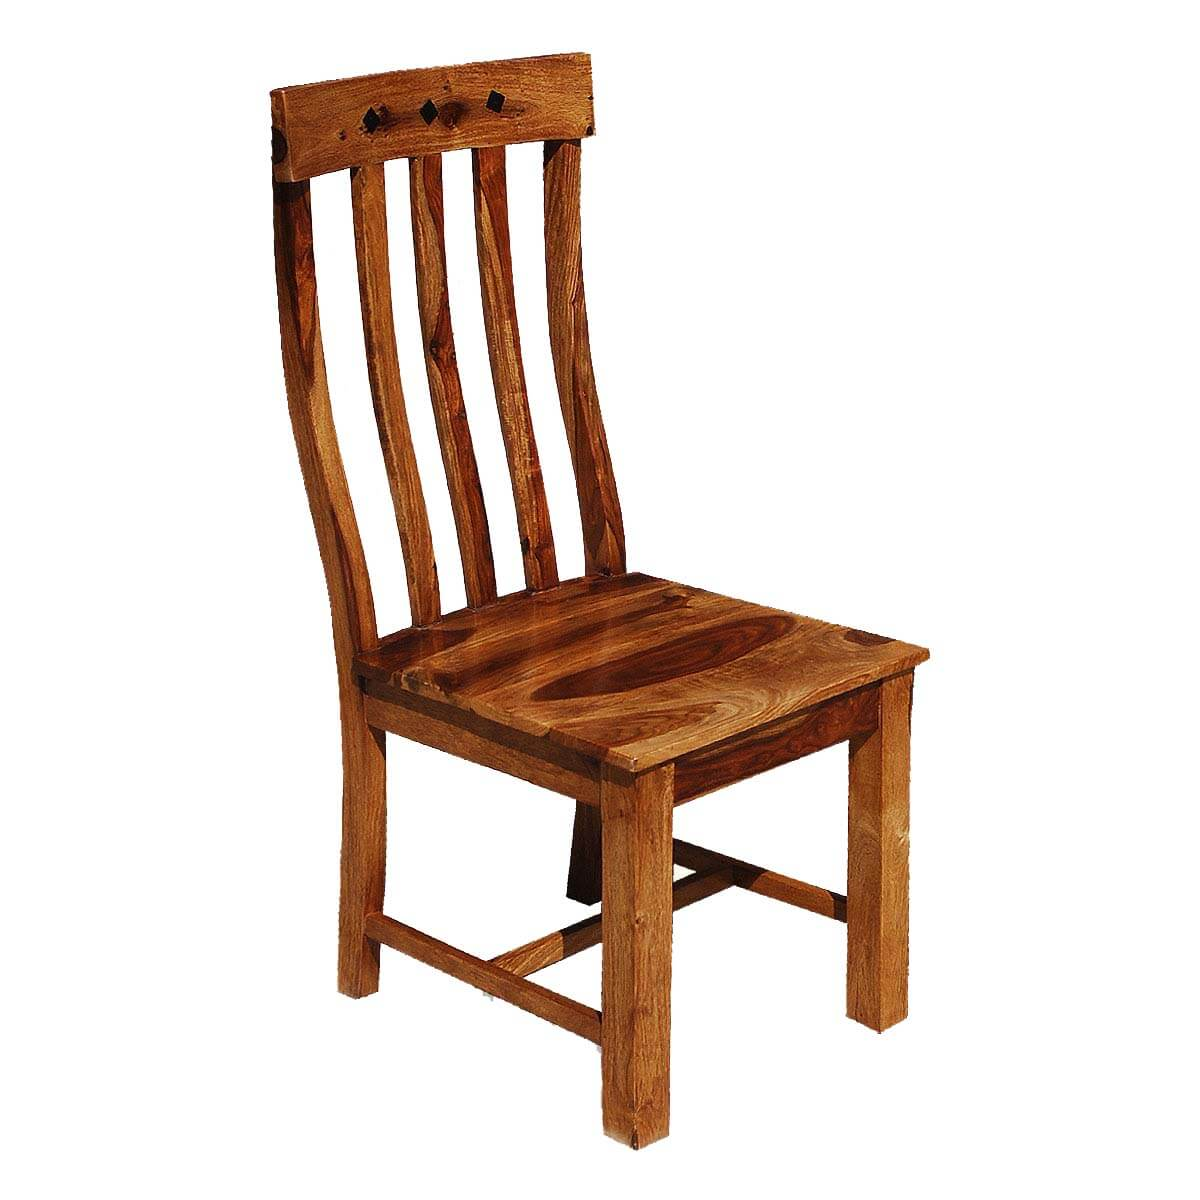 wooden school chairs cheap throne chair for sale oklahoma farmhouse solid wood back set of 2